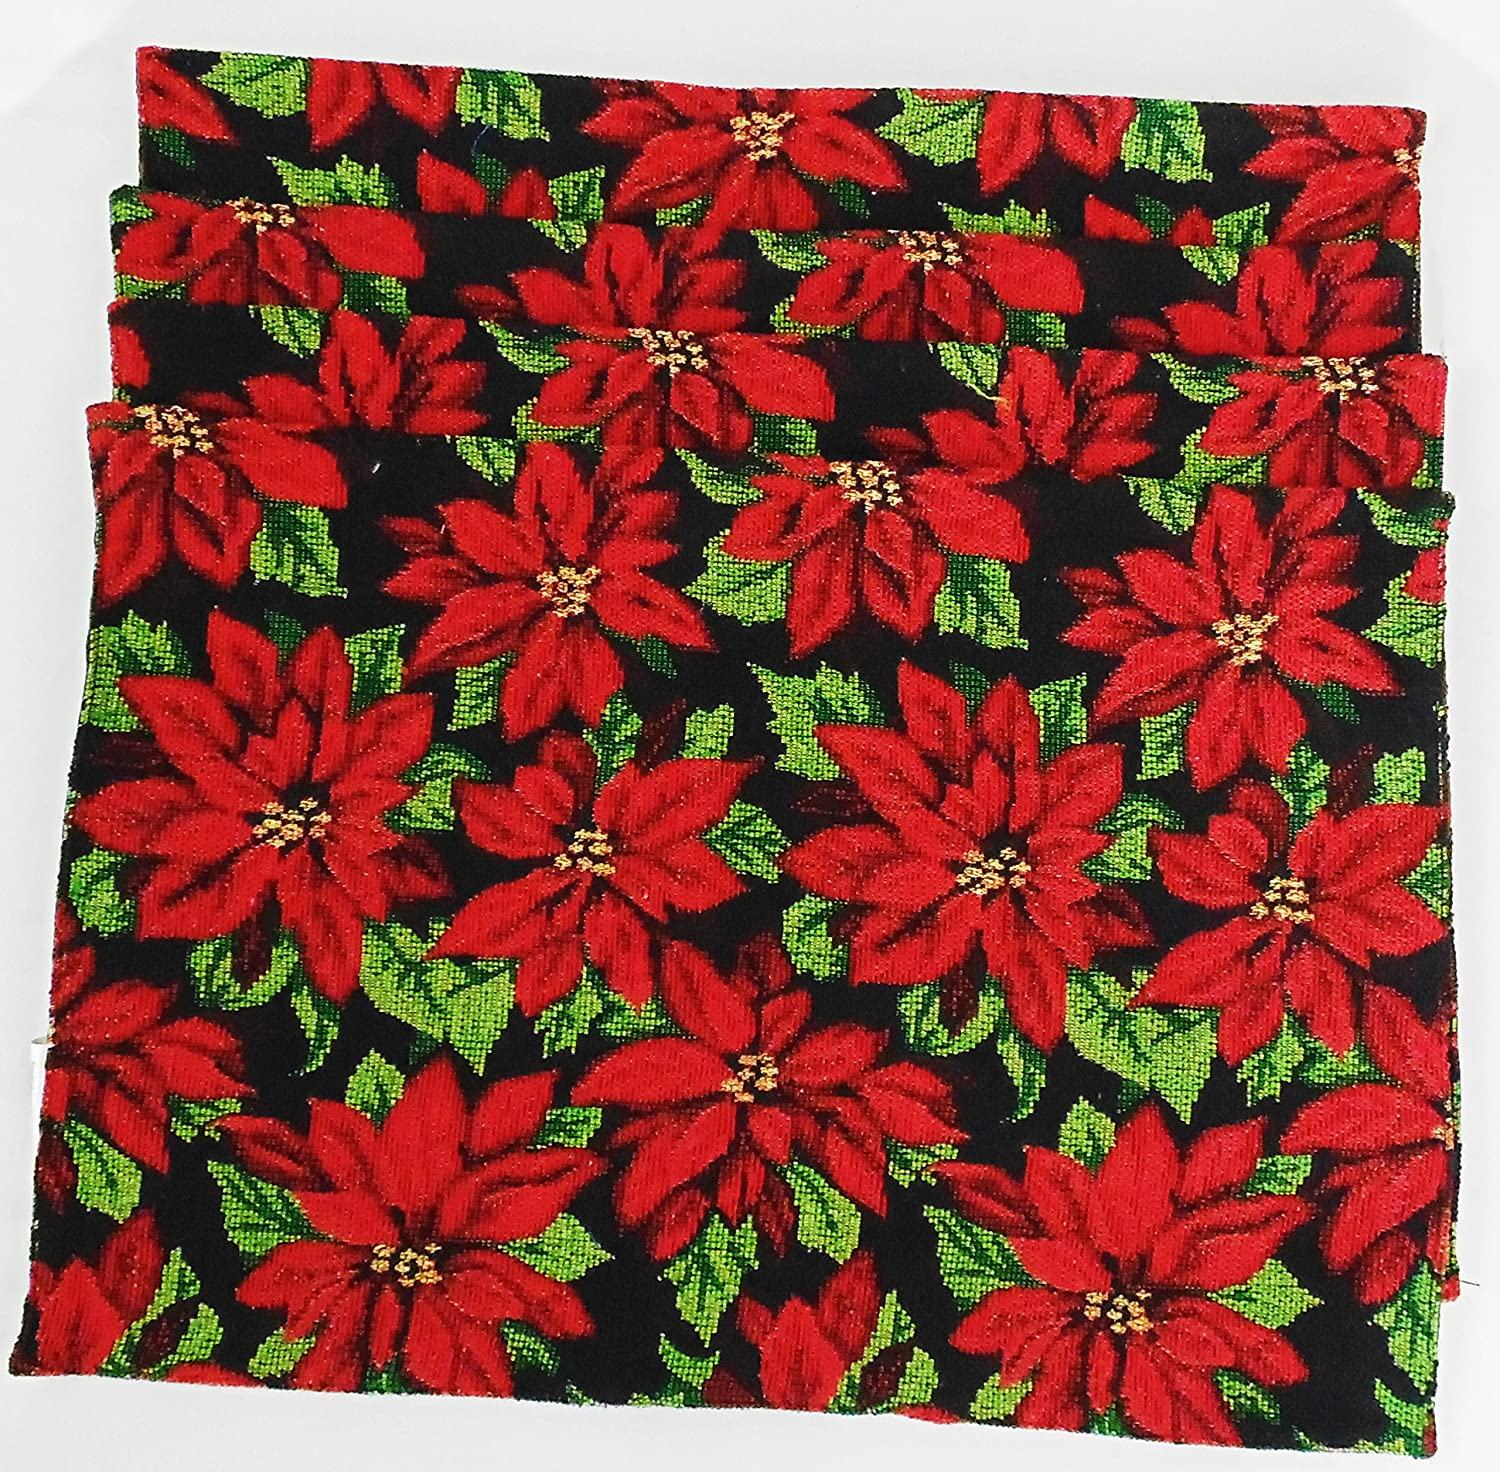 Poinsettia Placemats Page Two | Christmas Wikii - photo#37